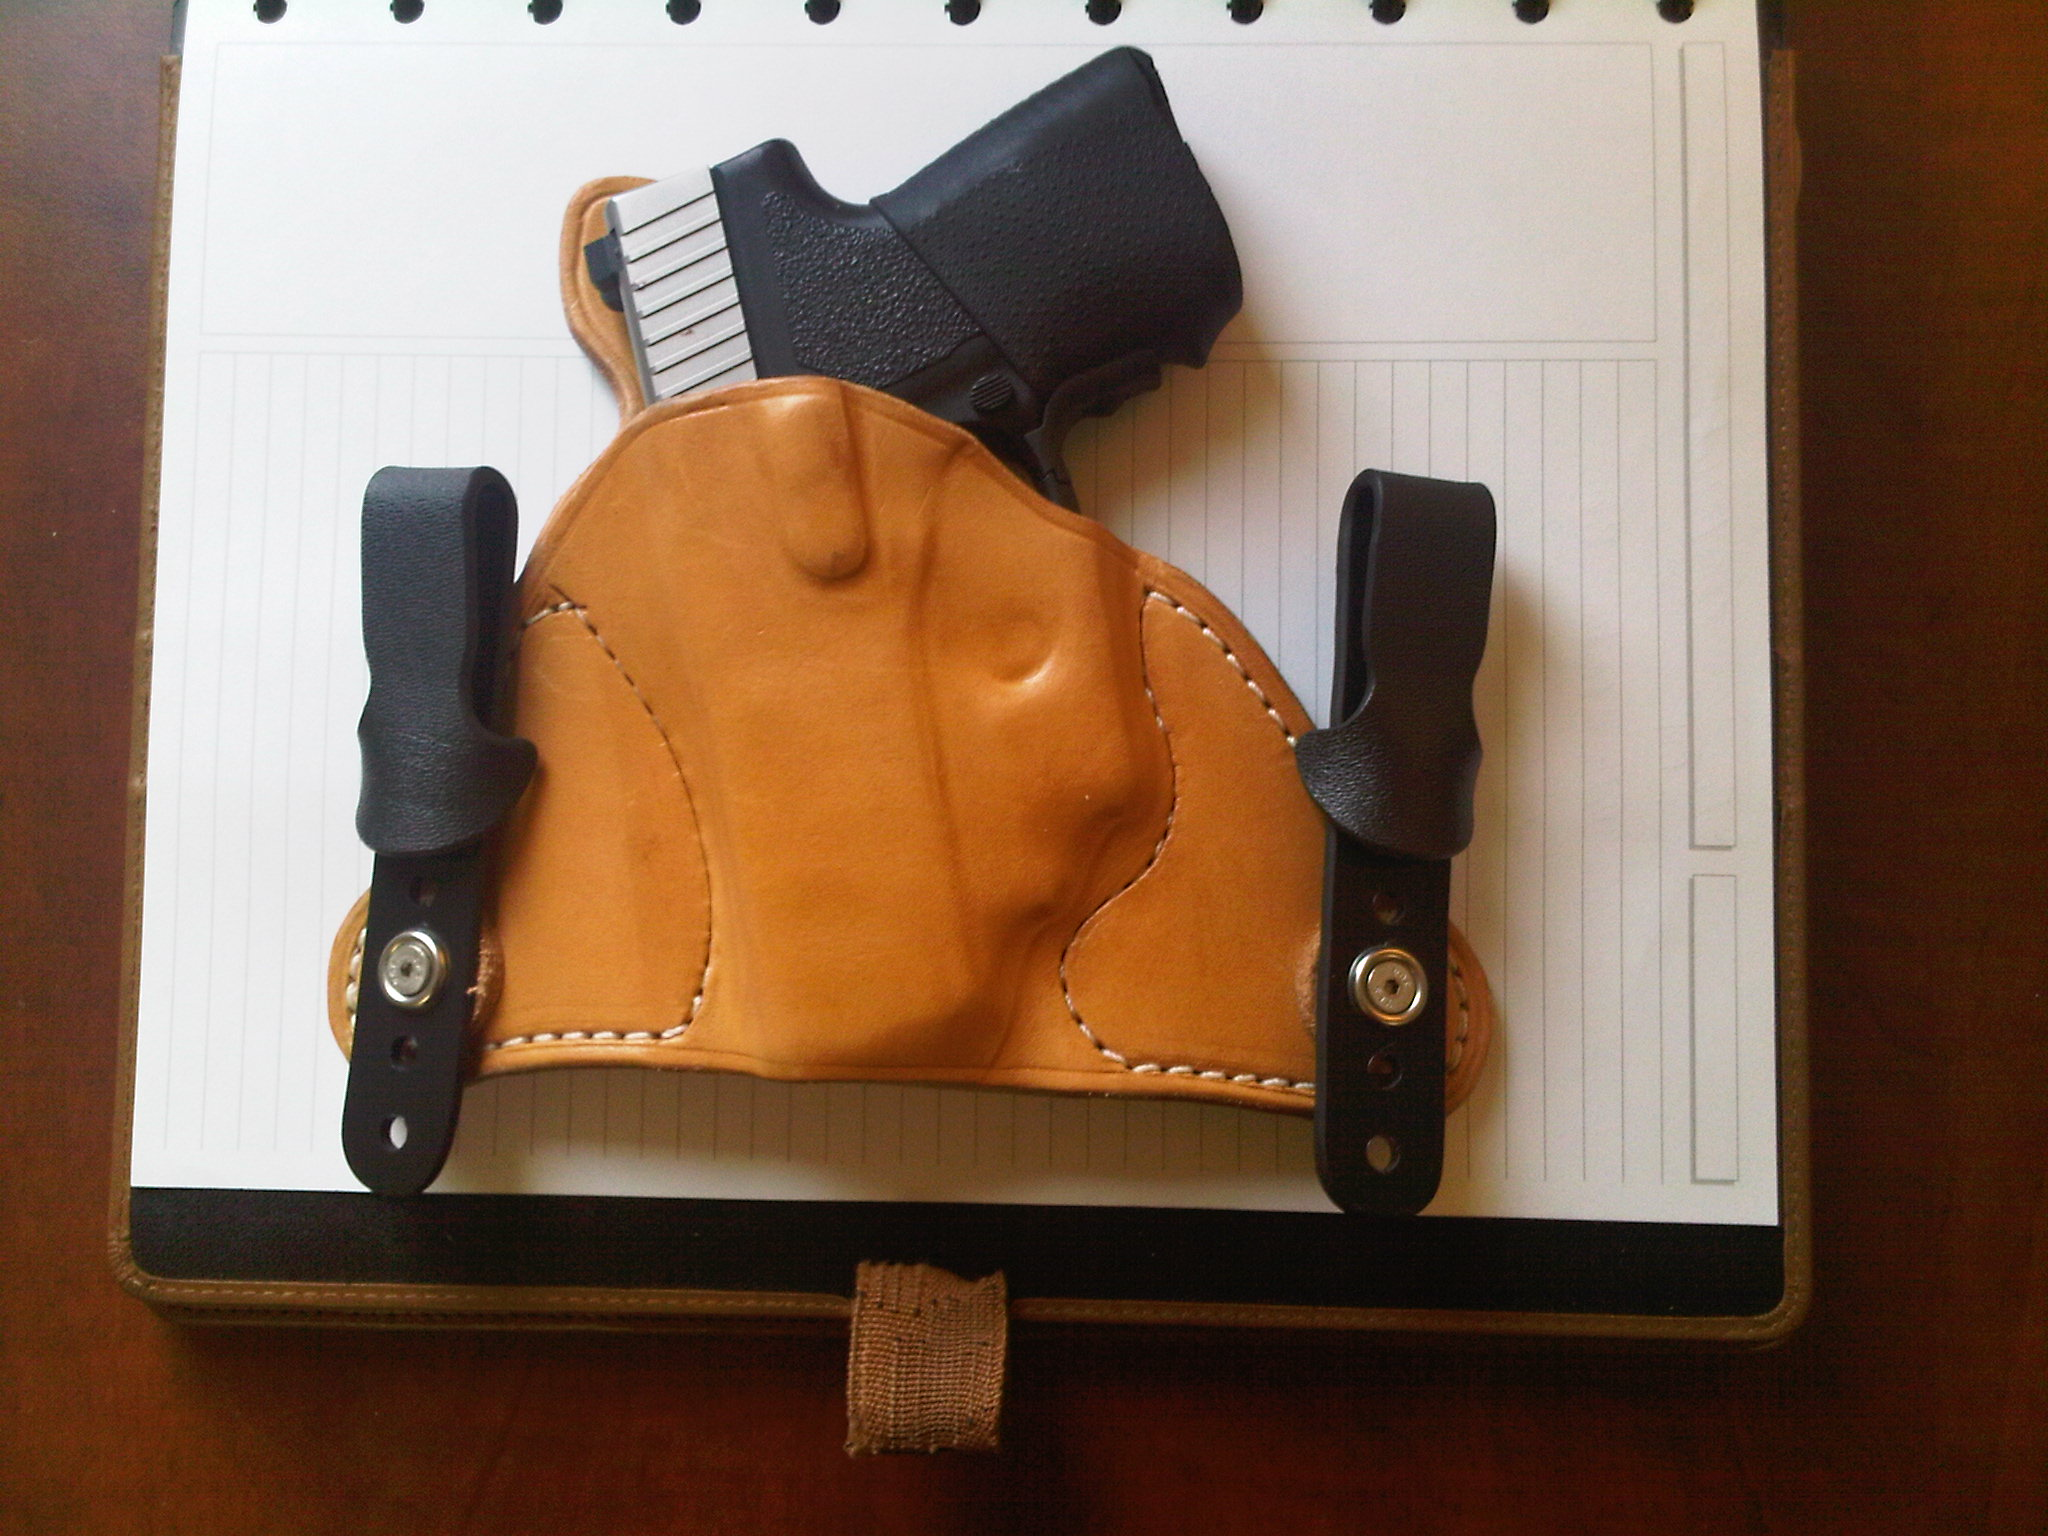 Kahr PM9 holster suggestions-img00026-20100422-1322.jpg